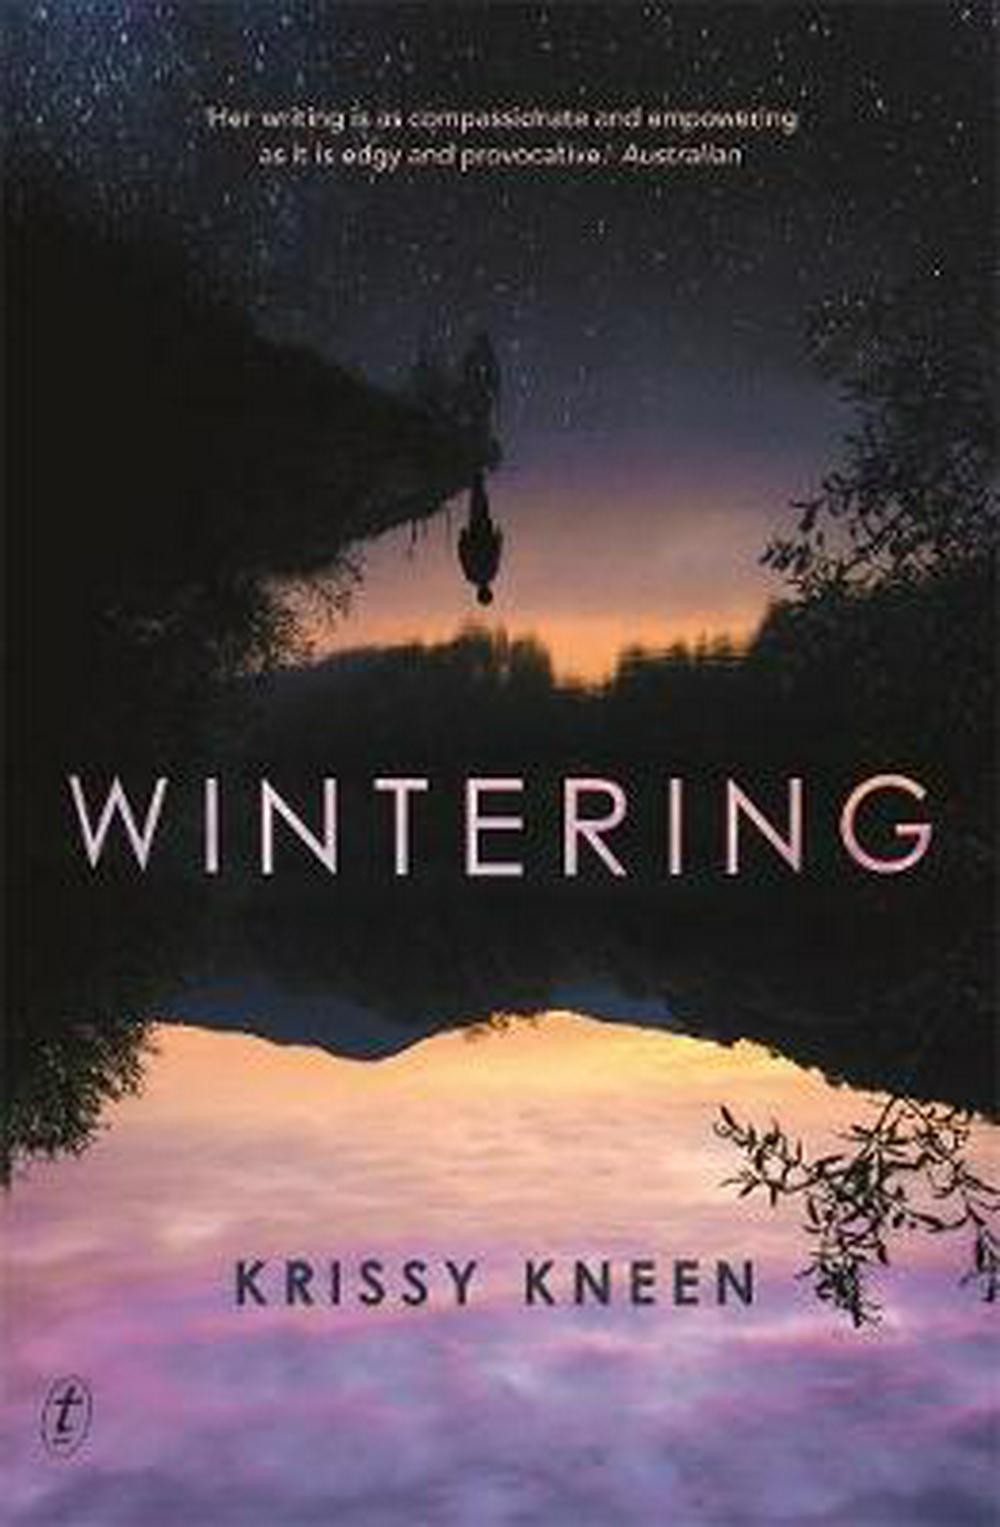 Wintering by Krissy Kneen, ISBN: 9781925603880